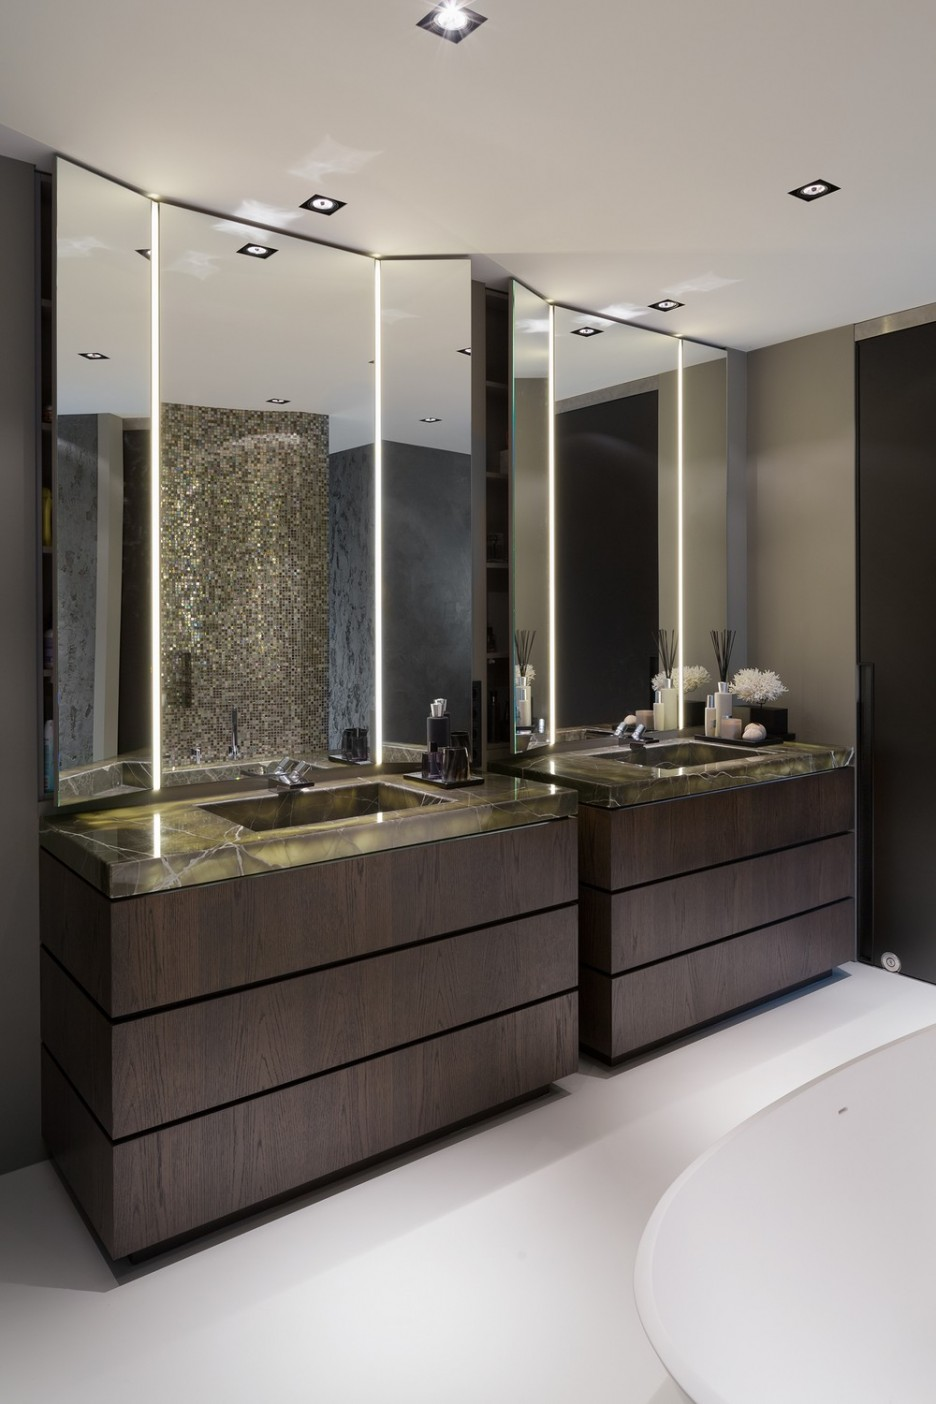 Glimmering Contemporary Villa Interior with Sophisticated Chic Design: Luxurious Double Vanity With Double Sinks And Bay Style Folding Mirrors As Another Main Feature Of Rotterdam Residence Bathroom